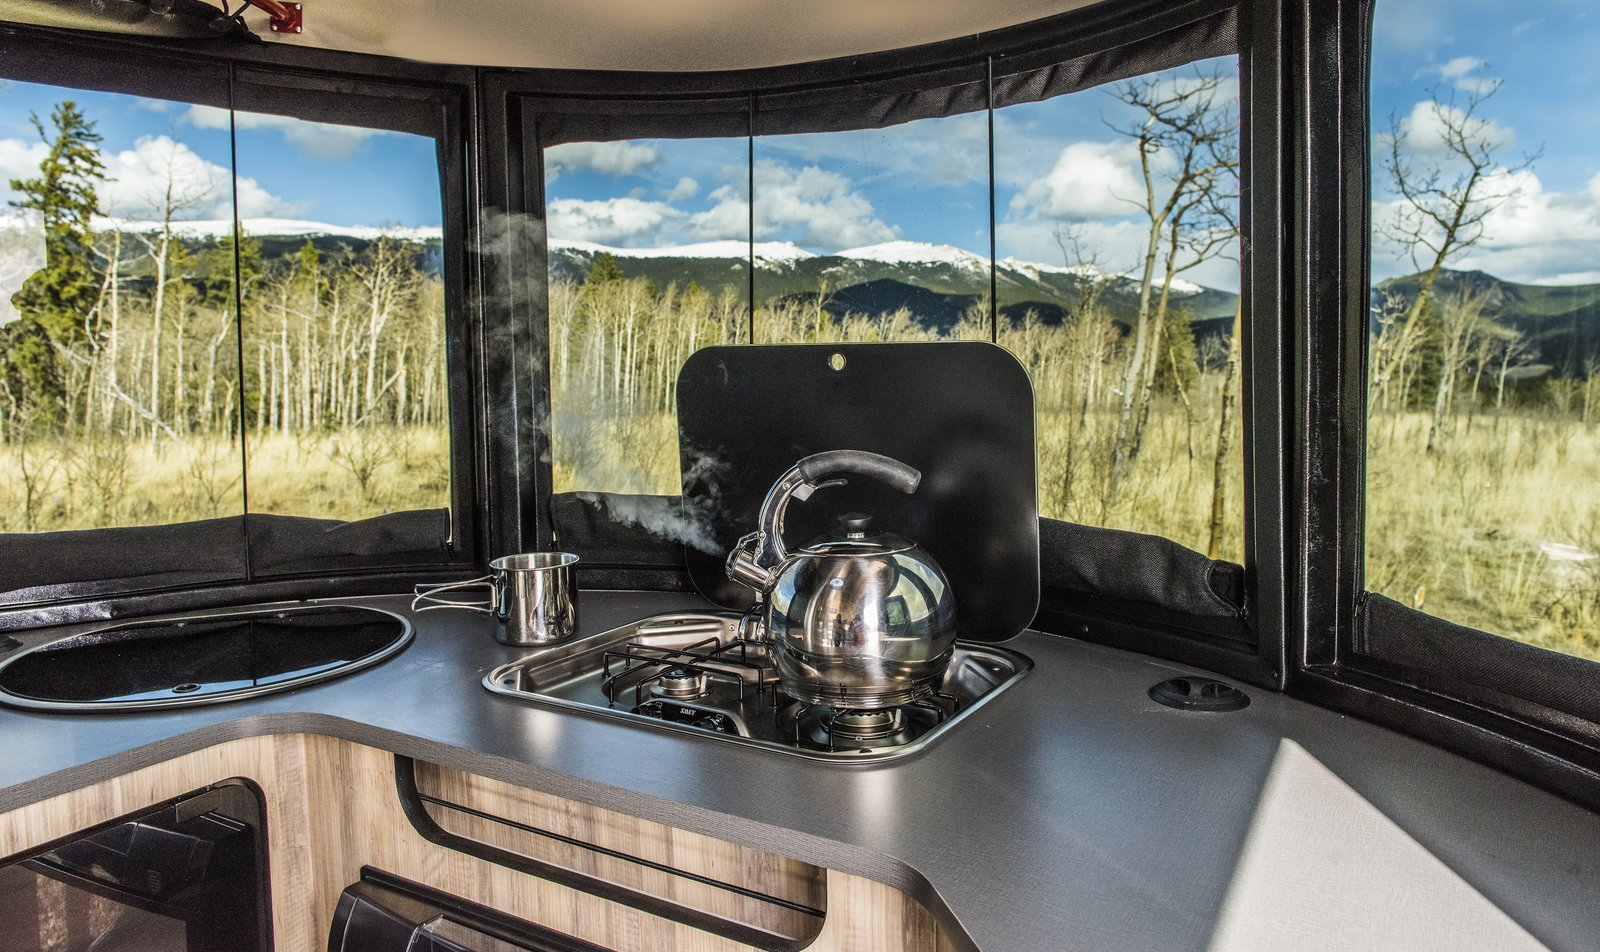 basecamp airstream adventure trailer kitchen